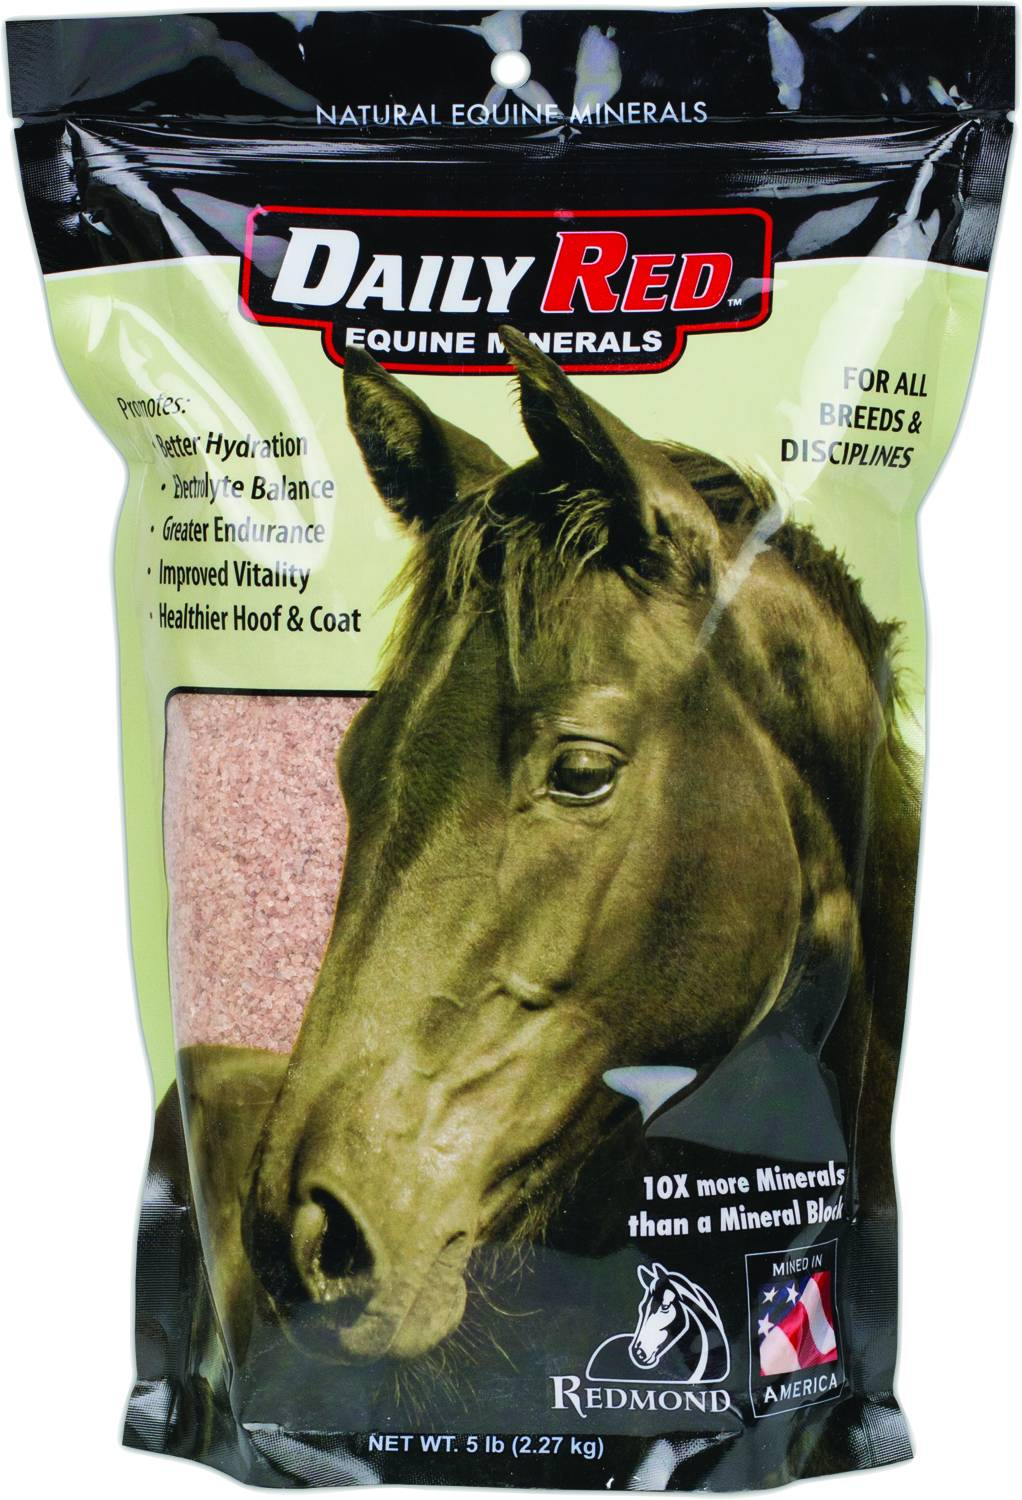 Daily Red Equine Minerals